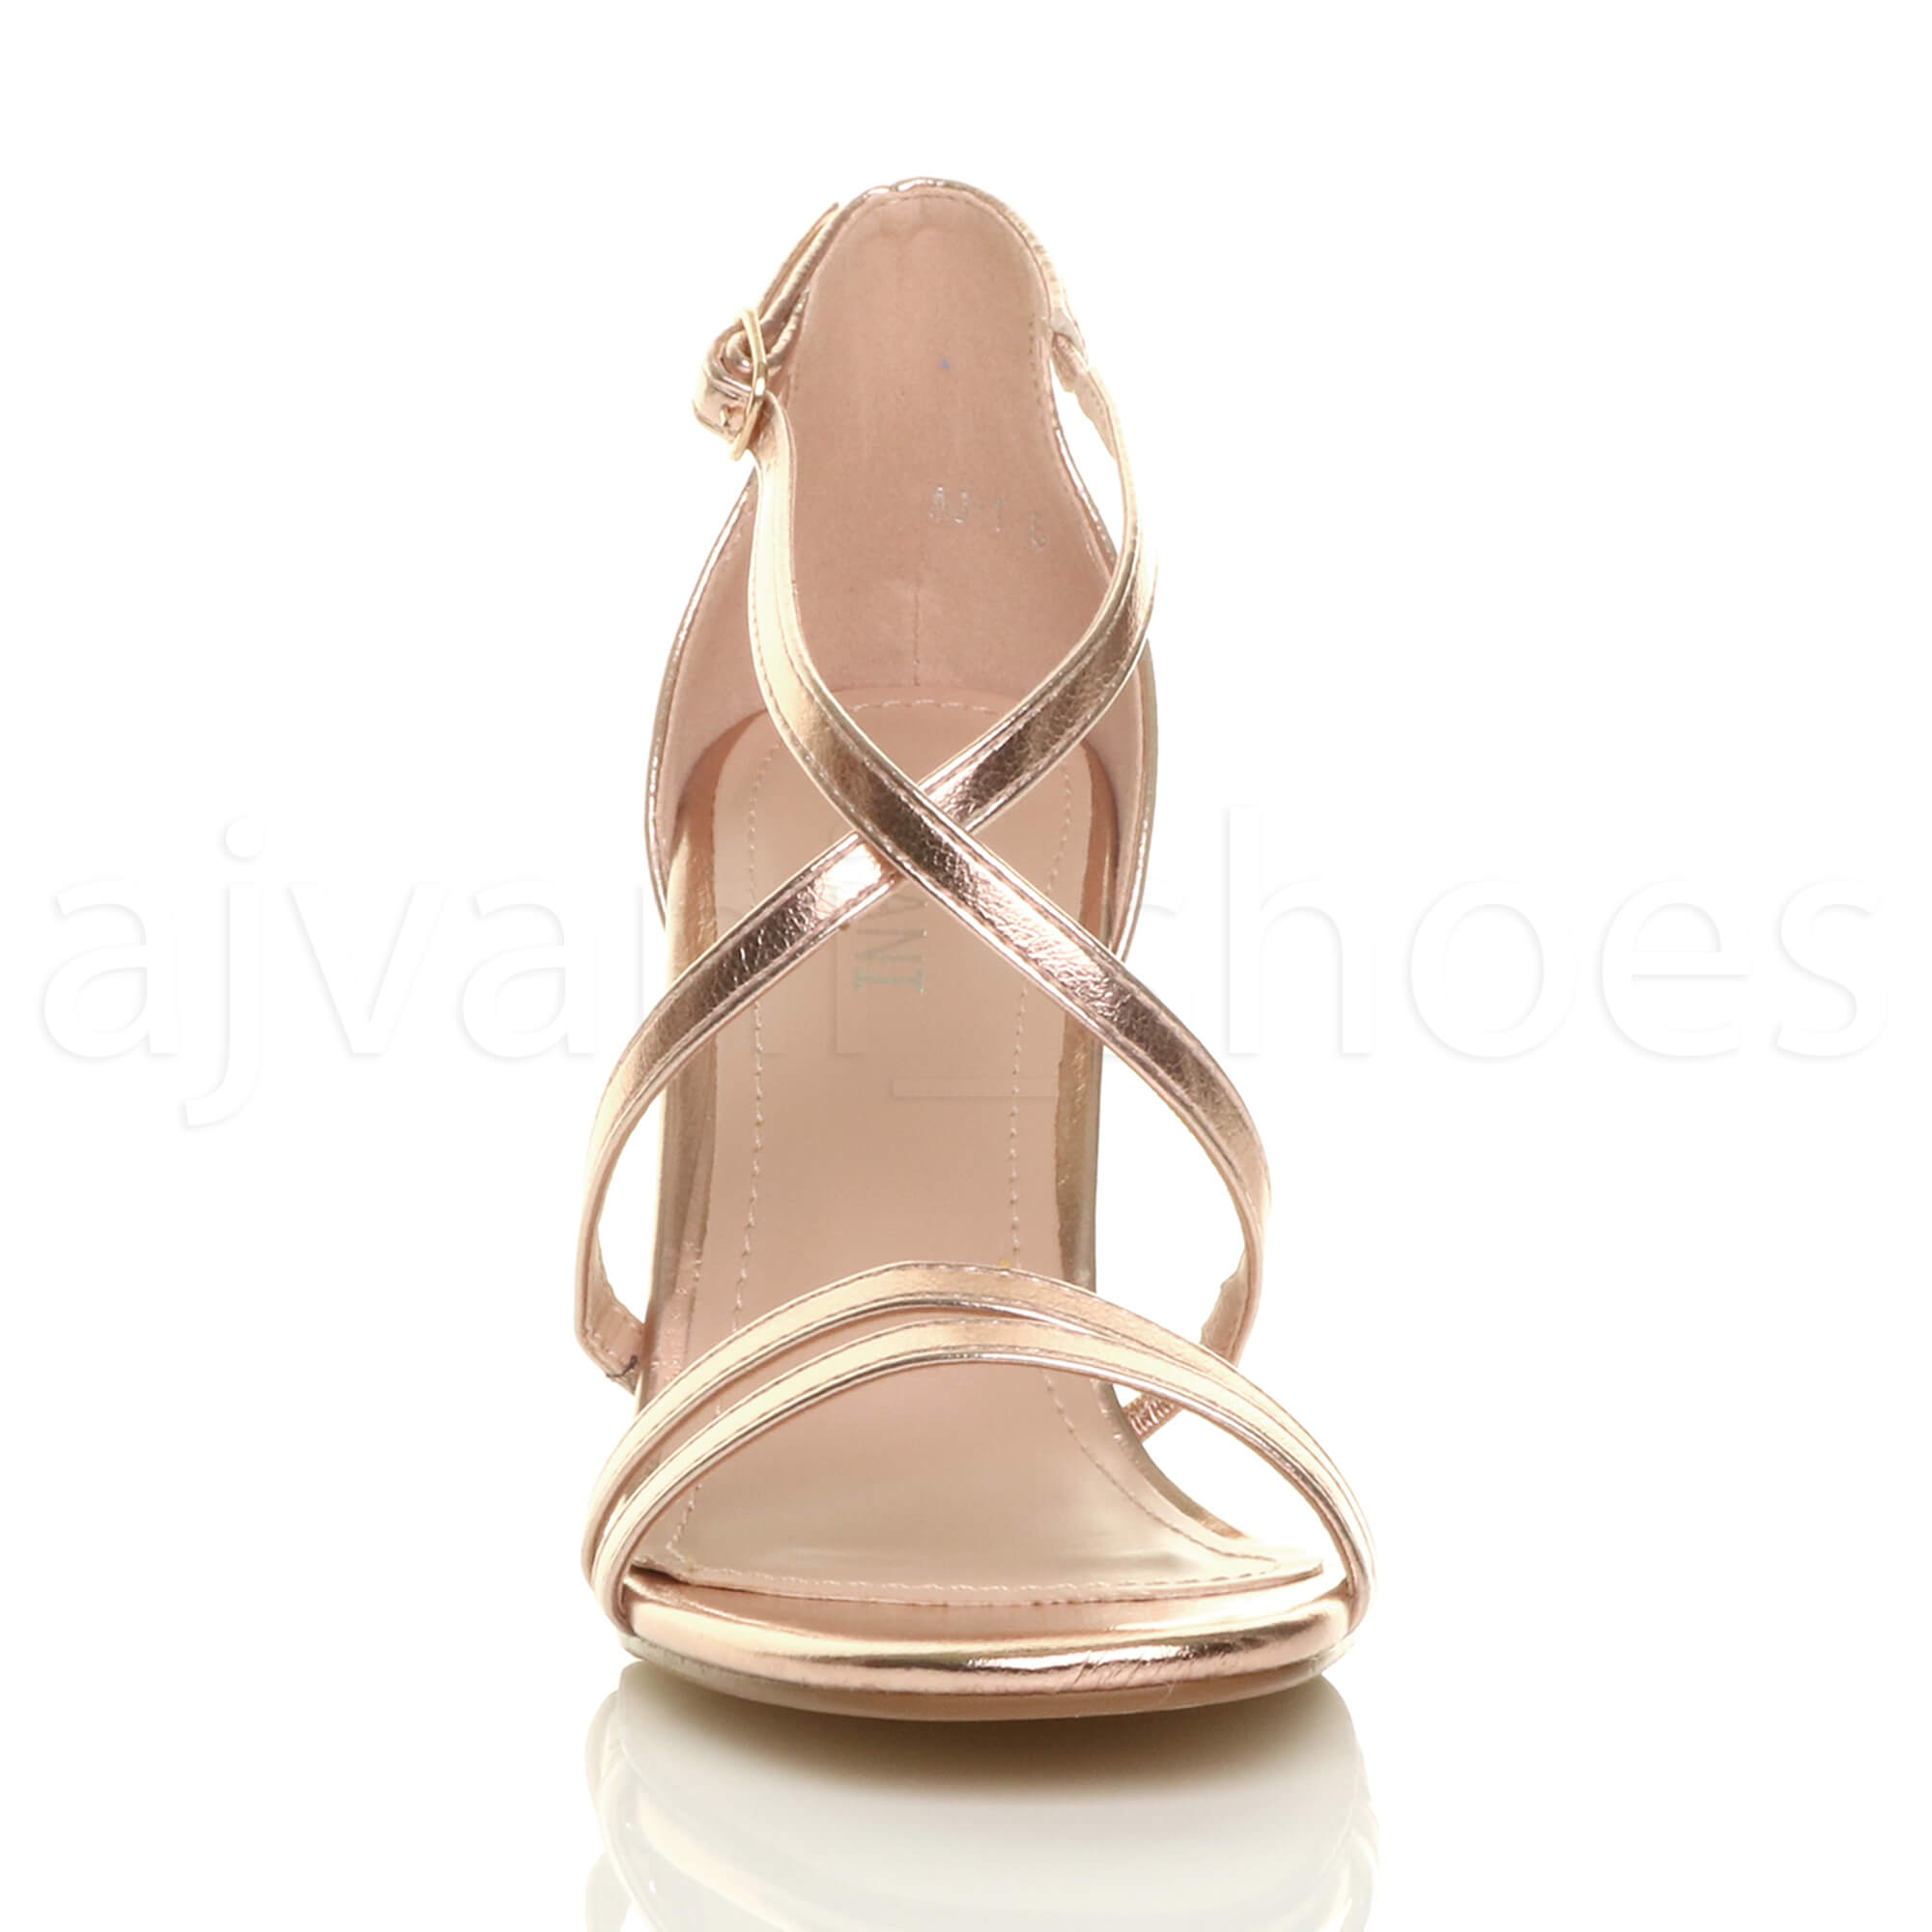 WOMENS-LADIES-MID-HIGH-HEEL-STRAPPY-CROSSOVER-WEDDING-PROM-SANDALS-SHOES-SIZE thumbnail 139